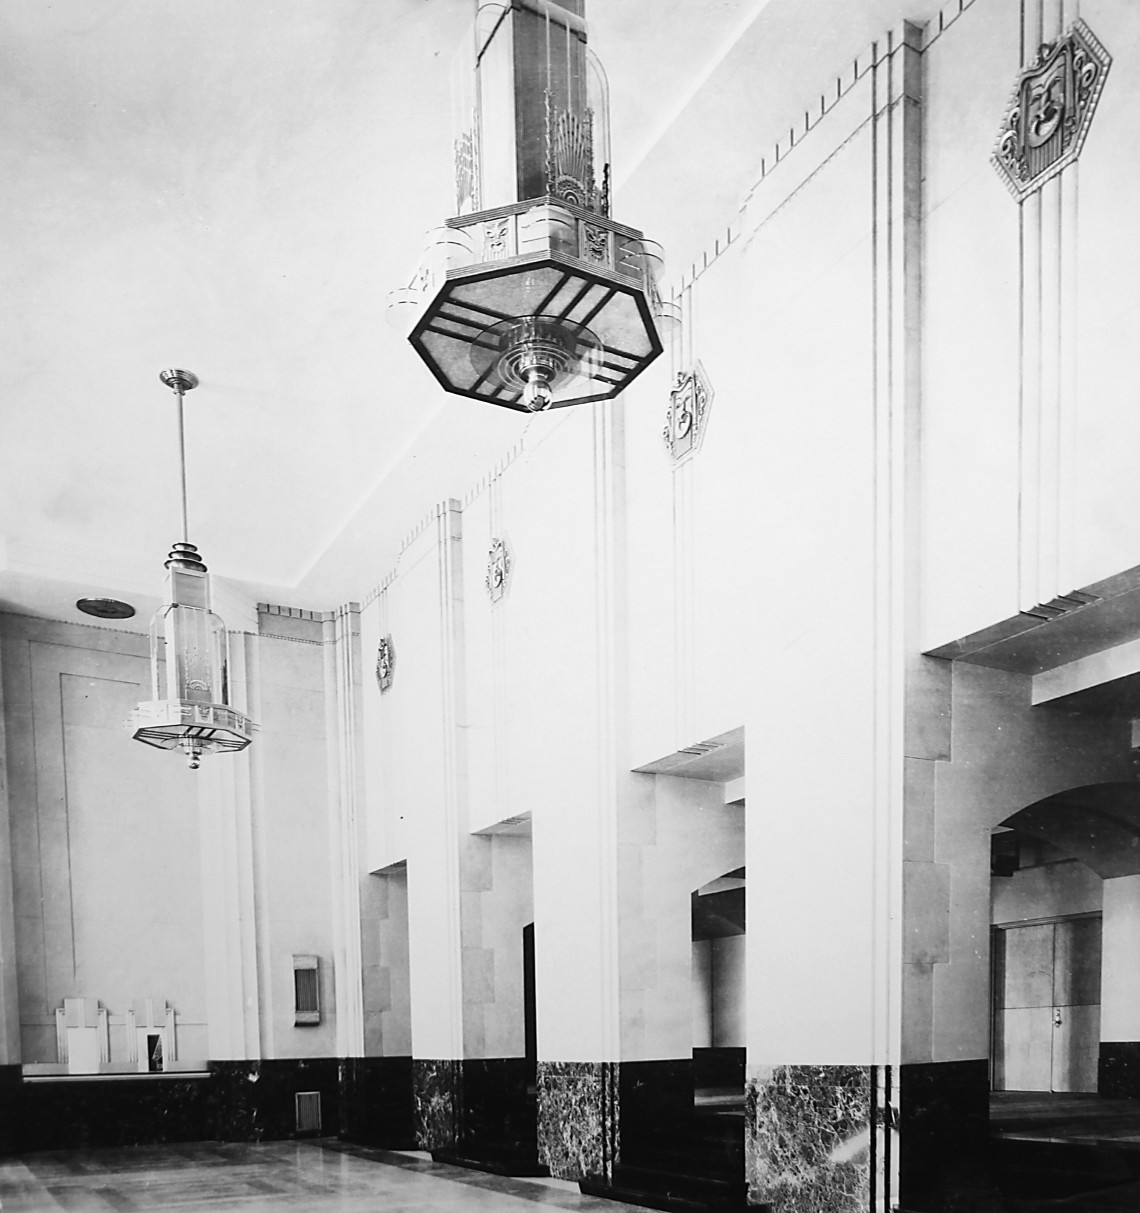 A historic view of the main lobby of the Joseph T. Robinson Memorial Auditorium officially opened in December 1939. The renovation of the Robinson Center has revealed Art Deco features covered in the past in the name of modernizing. The building was placed on the National Register of Historic Places in 2007.